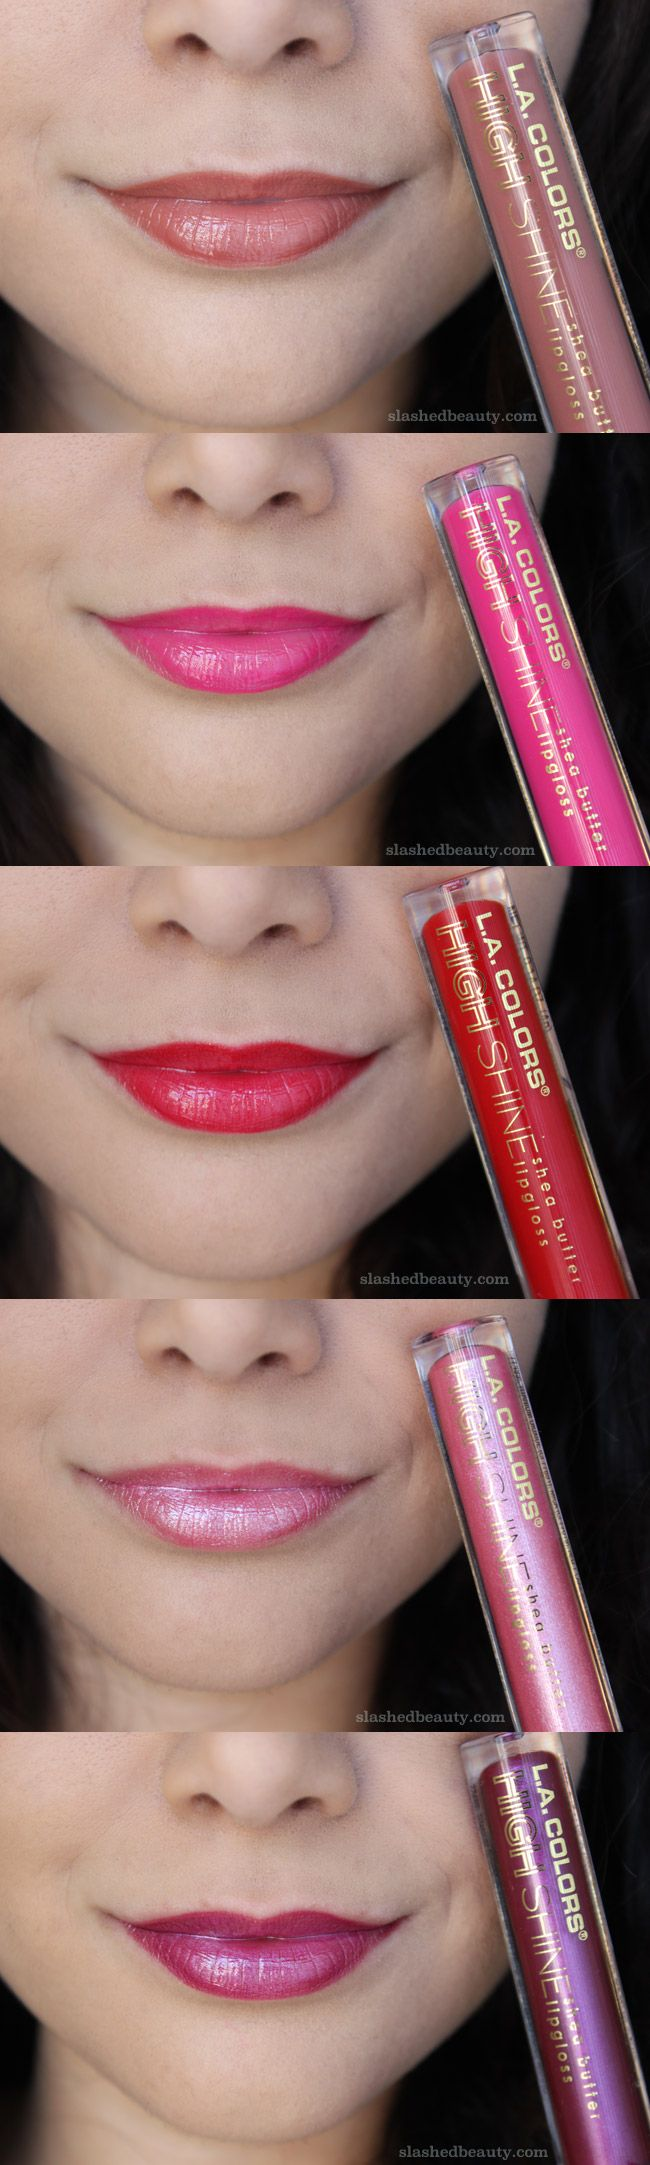 Can you believe this dollar store brand delivers such beautiful lipglosses? Click through for the full review of the L.A. Colors High Shine Shea Butter Lipglosses to see if their performance went beyond their pigmentation!